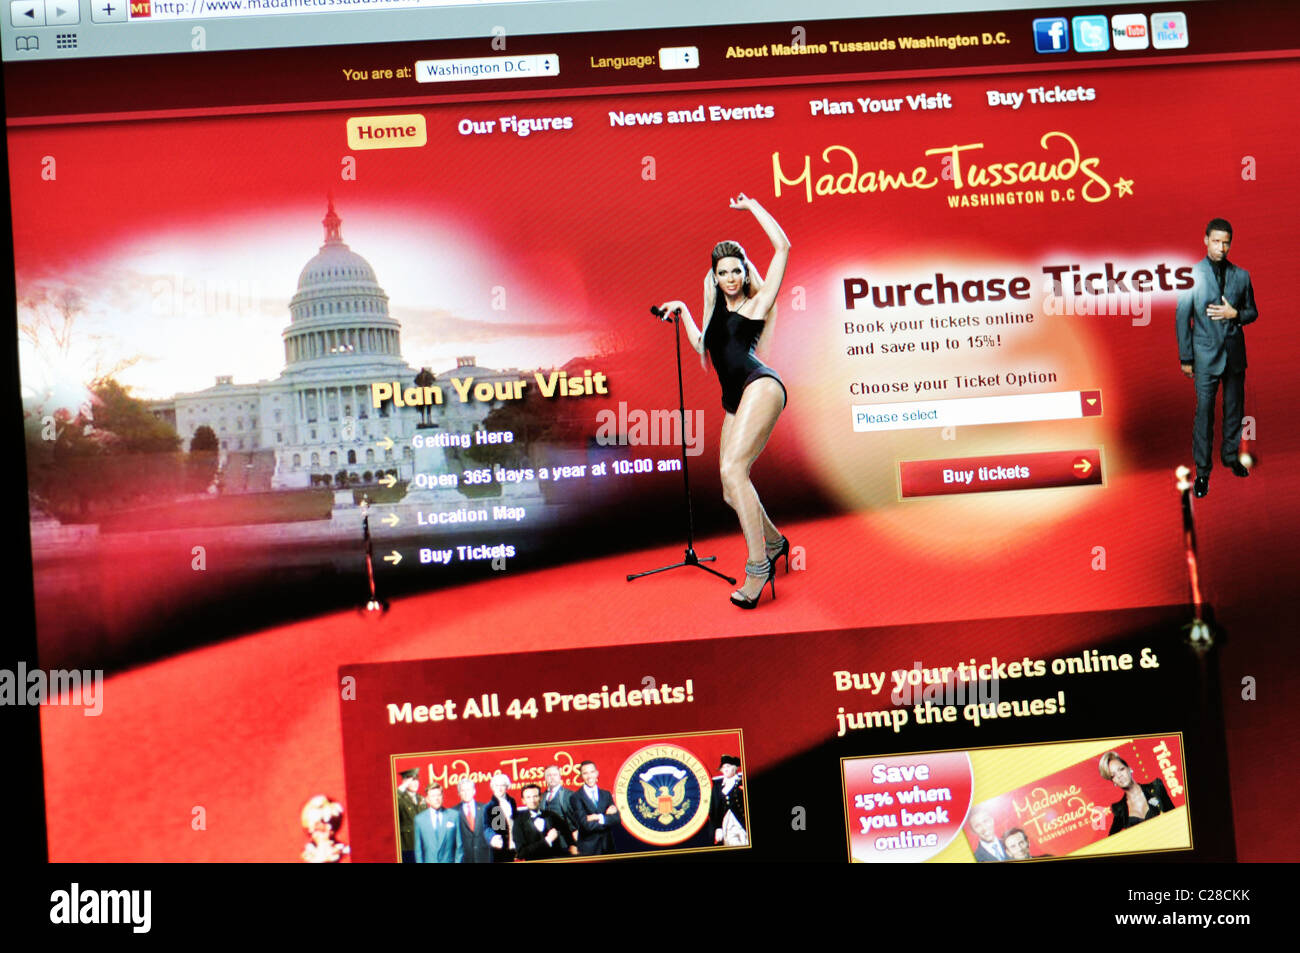 Madame Tussaud's wax museum  website - Washington DC - Stock Image